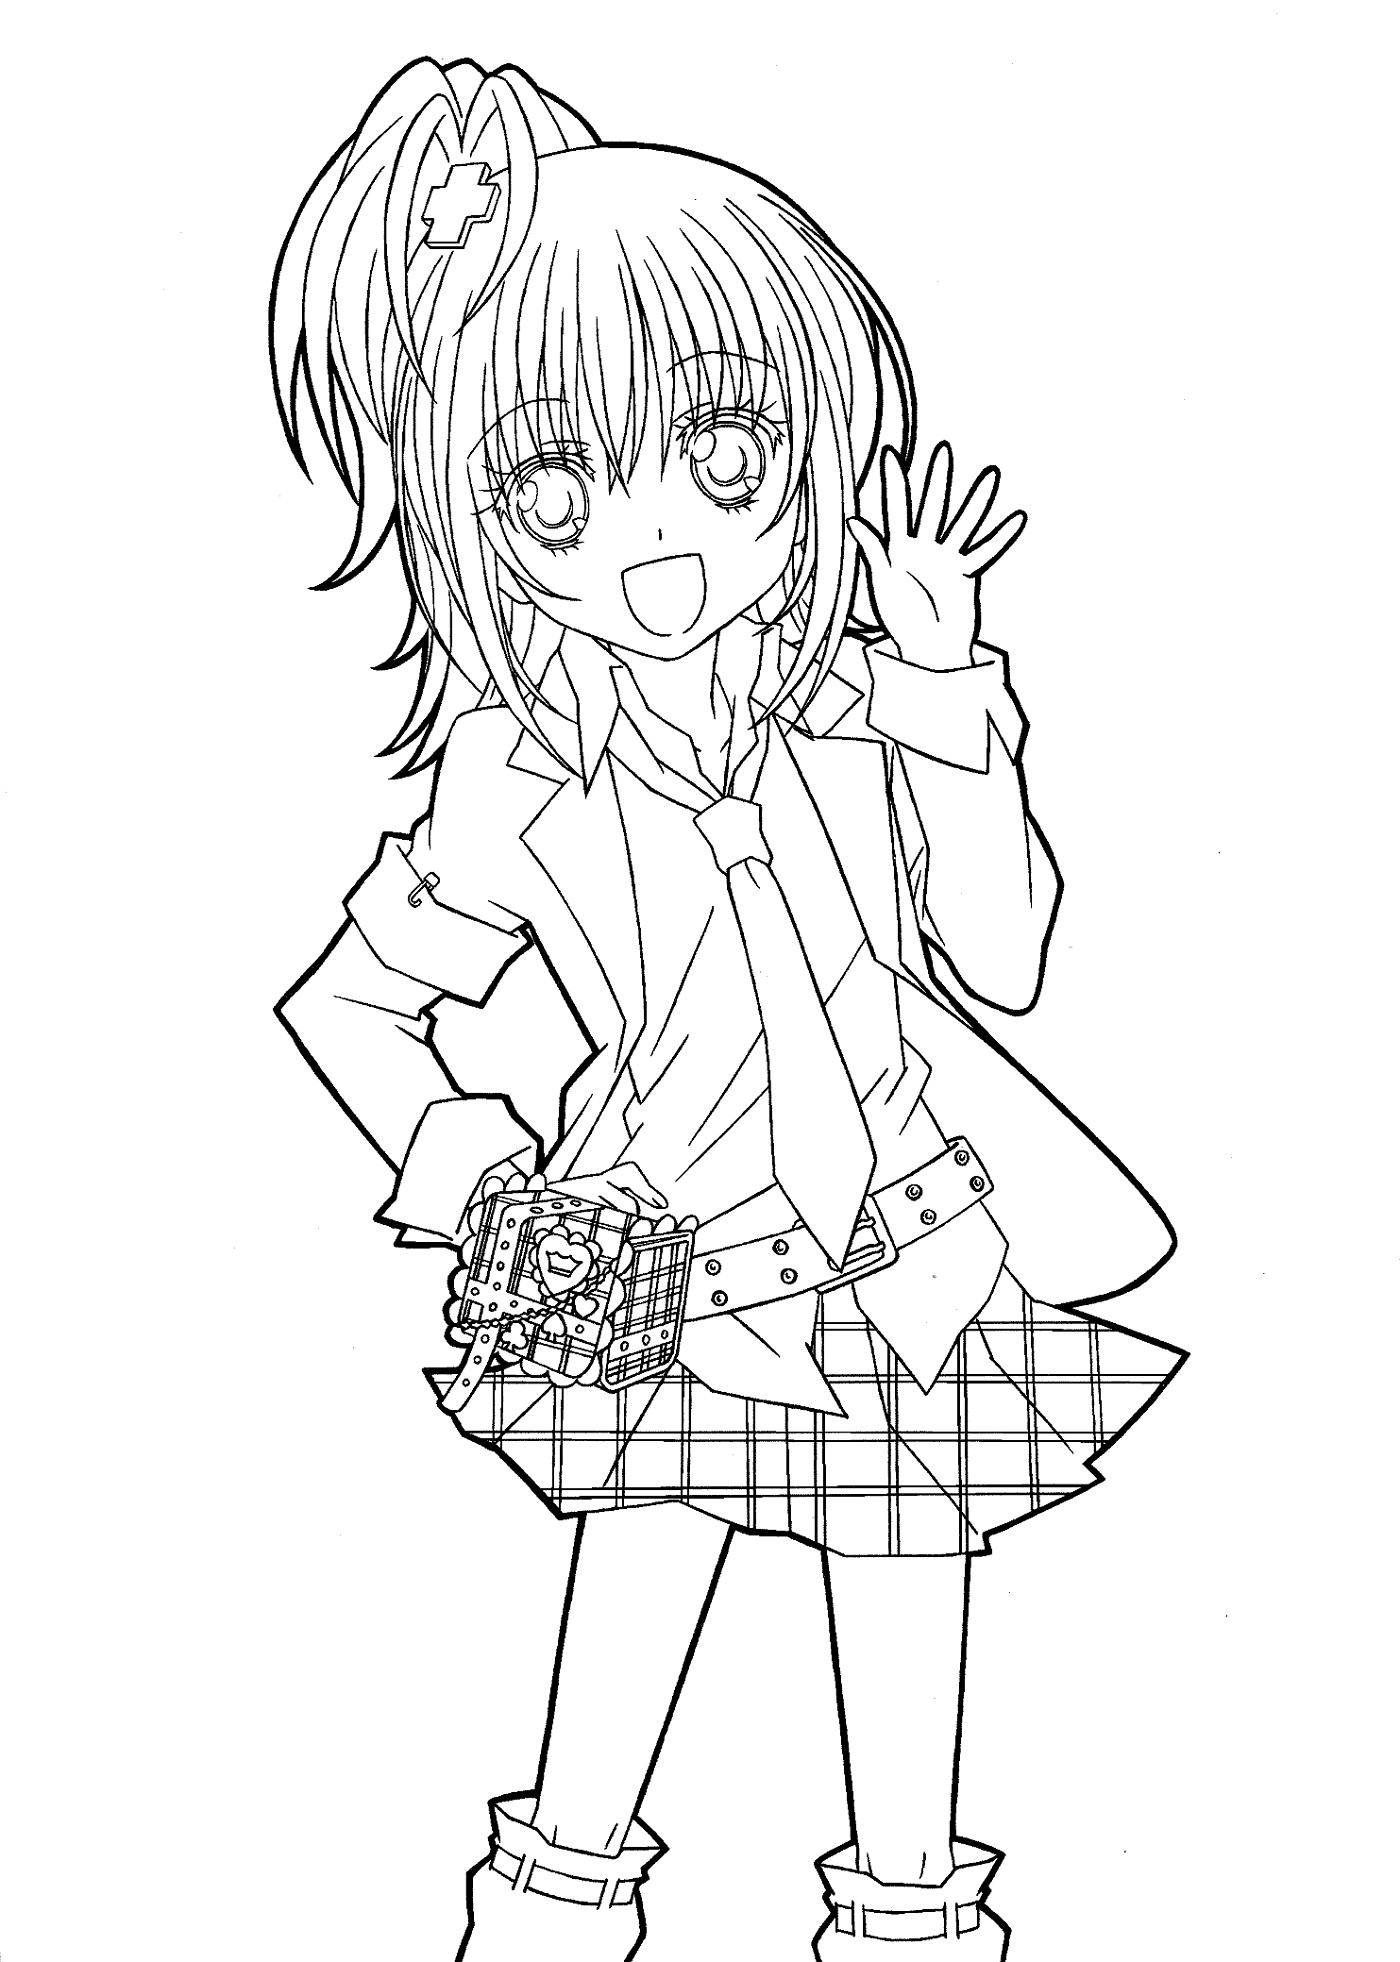 anime girl coloring pages printable free printable anime coloring pages coloring home coloring pages anime girl printable